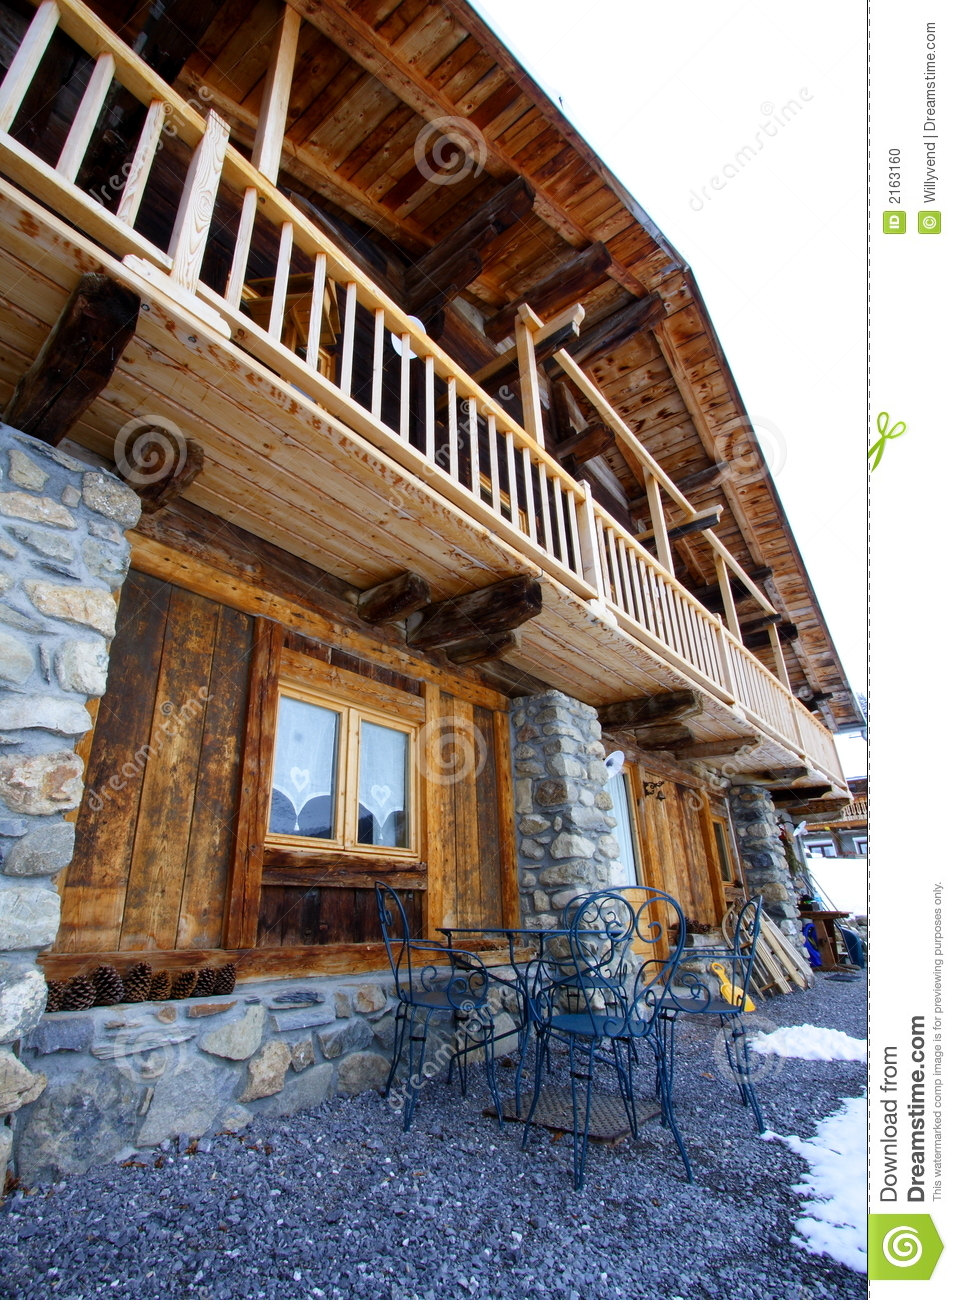 Download Big Rustic Chalet In The Alps Stock Photo - Image of snow, brown: 2163160